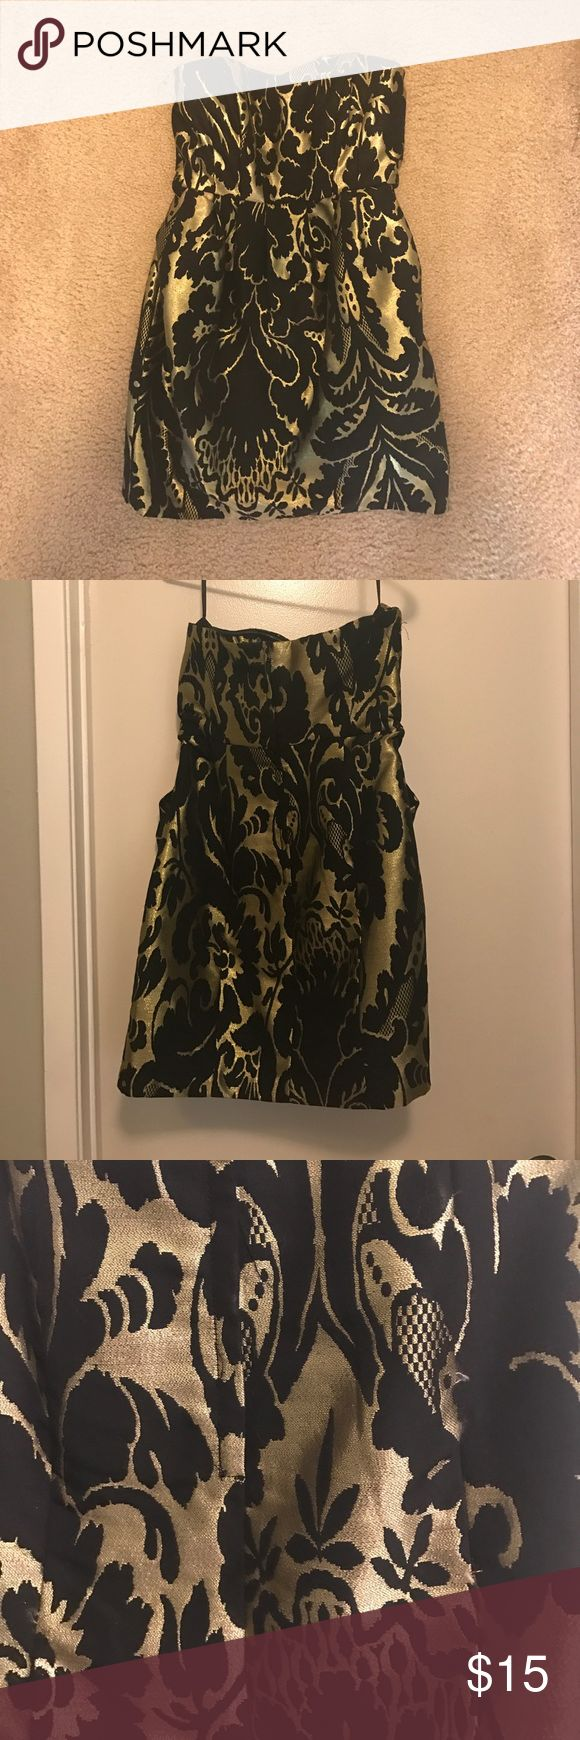 Black and gold night out dress Regal strapless, slight sweetheart neckline short dress. Black and gold, size US8. The dress is form fitting at the top and has pockets on the sides. Dresses Strapless